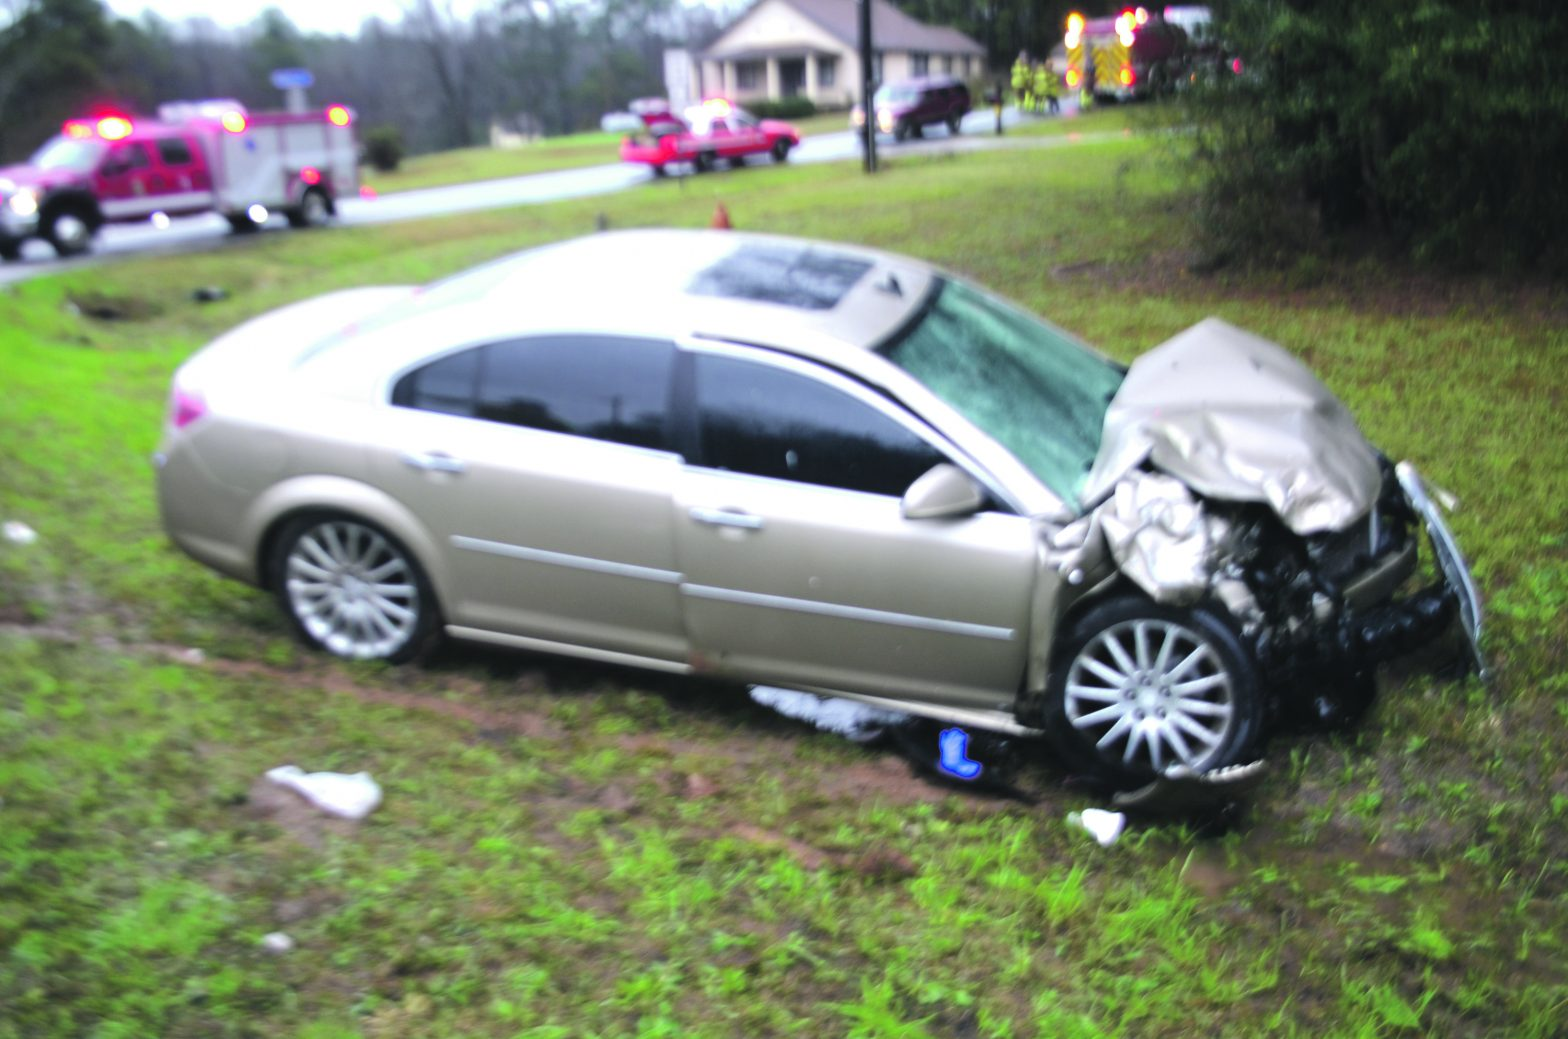 Wet Roads And Rains Claim More Injuries